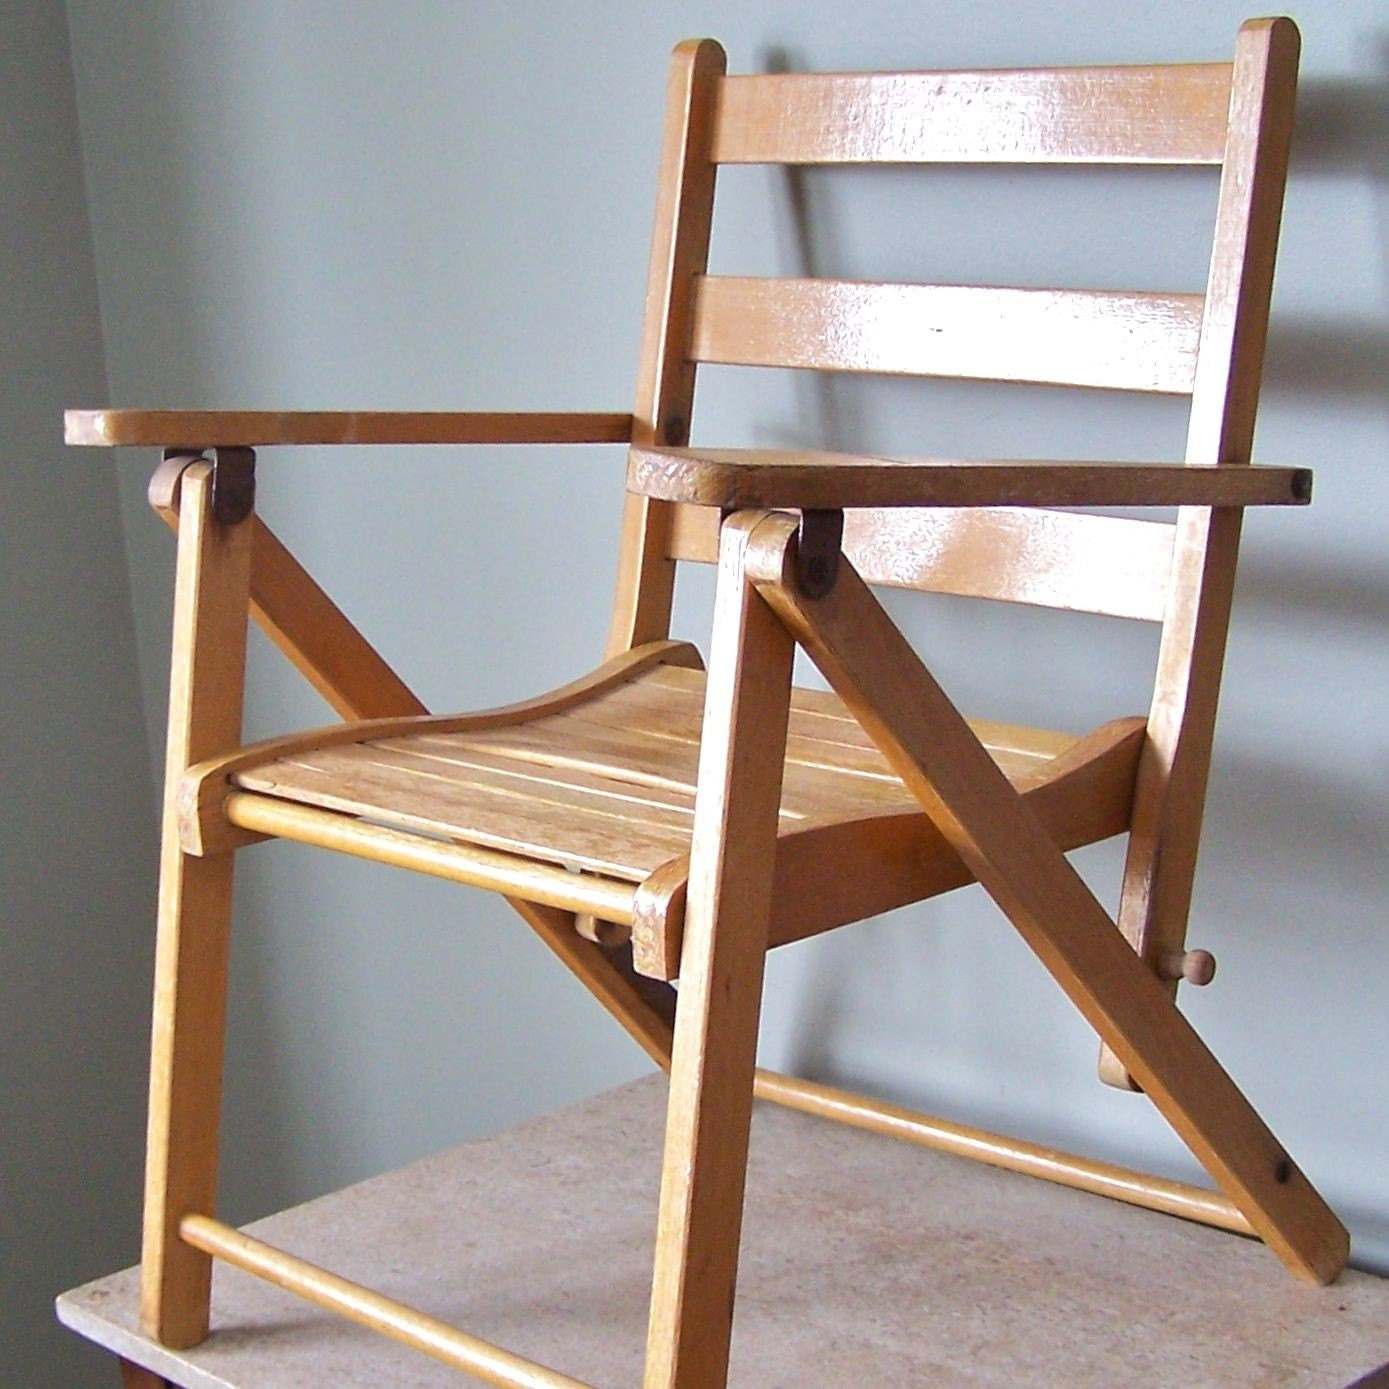 Vintage child folding chair for the beach, picnics, etc.